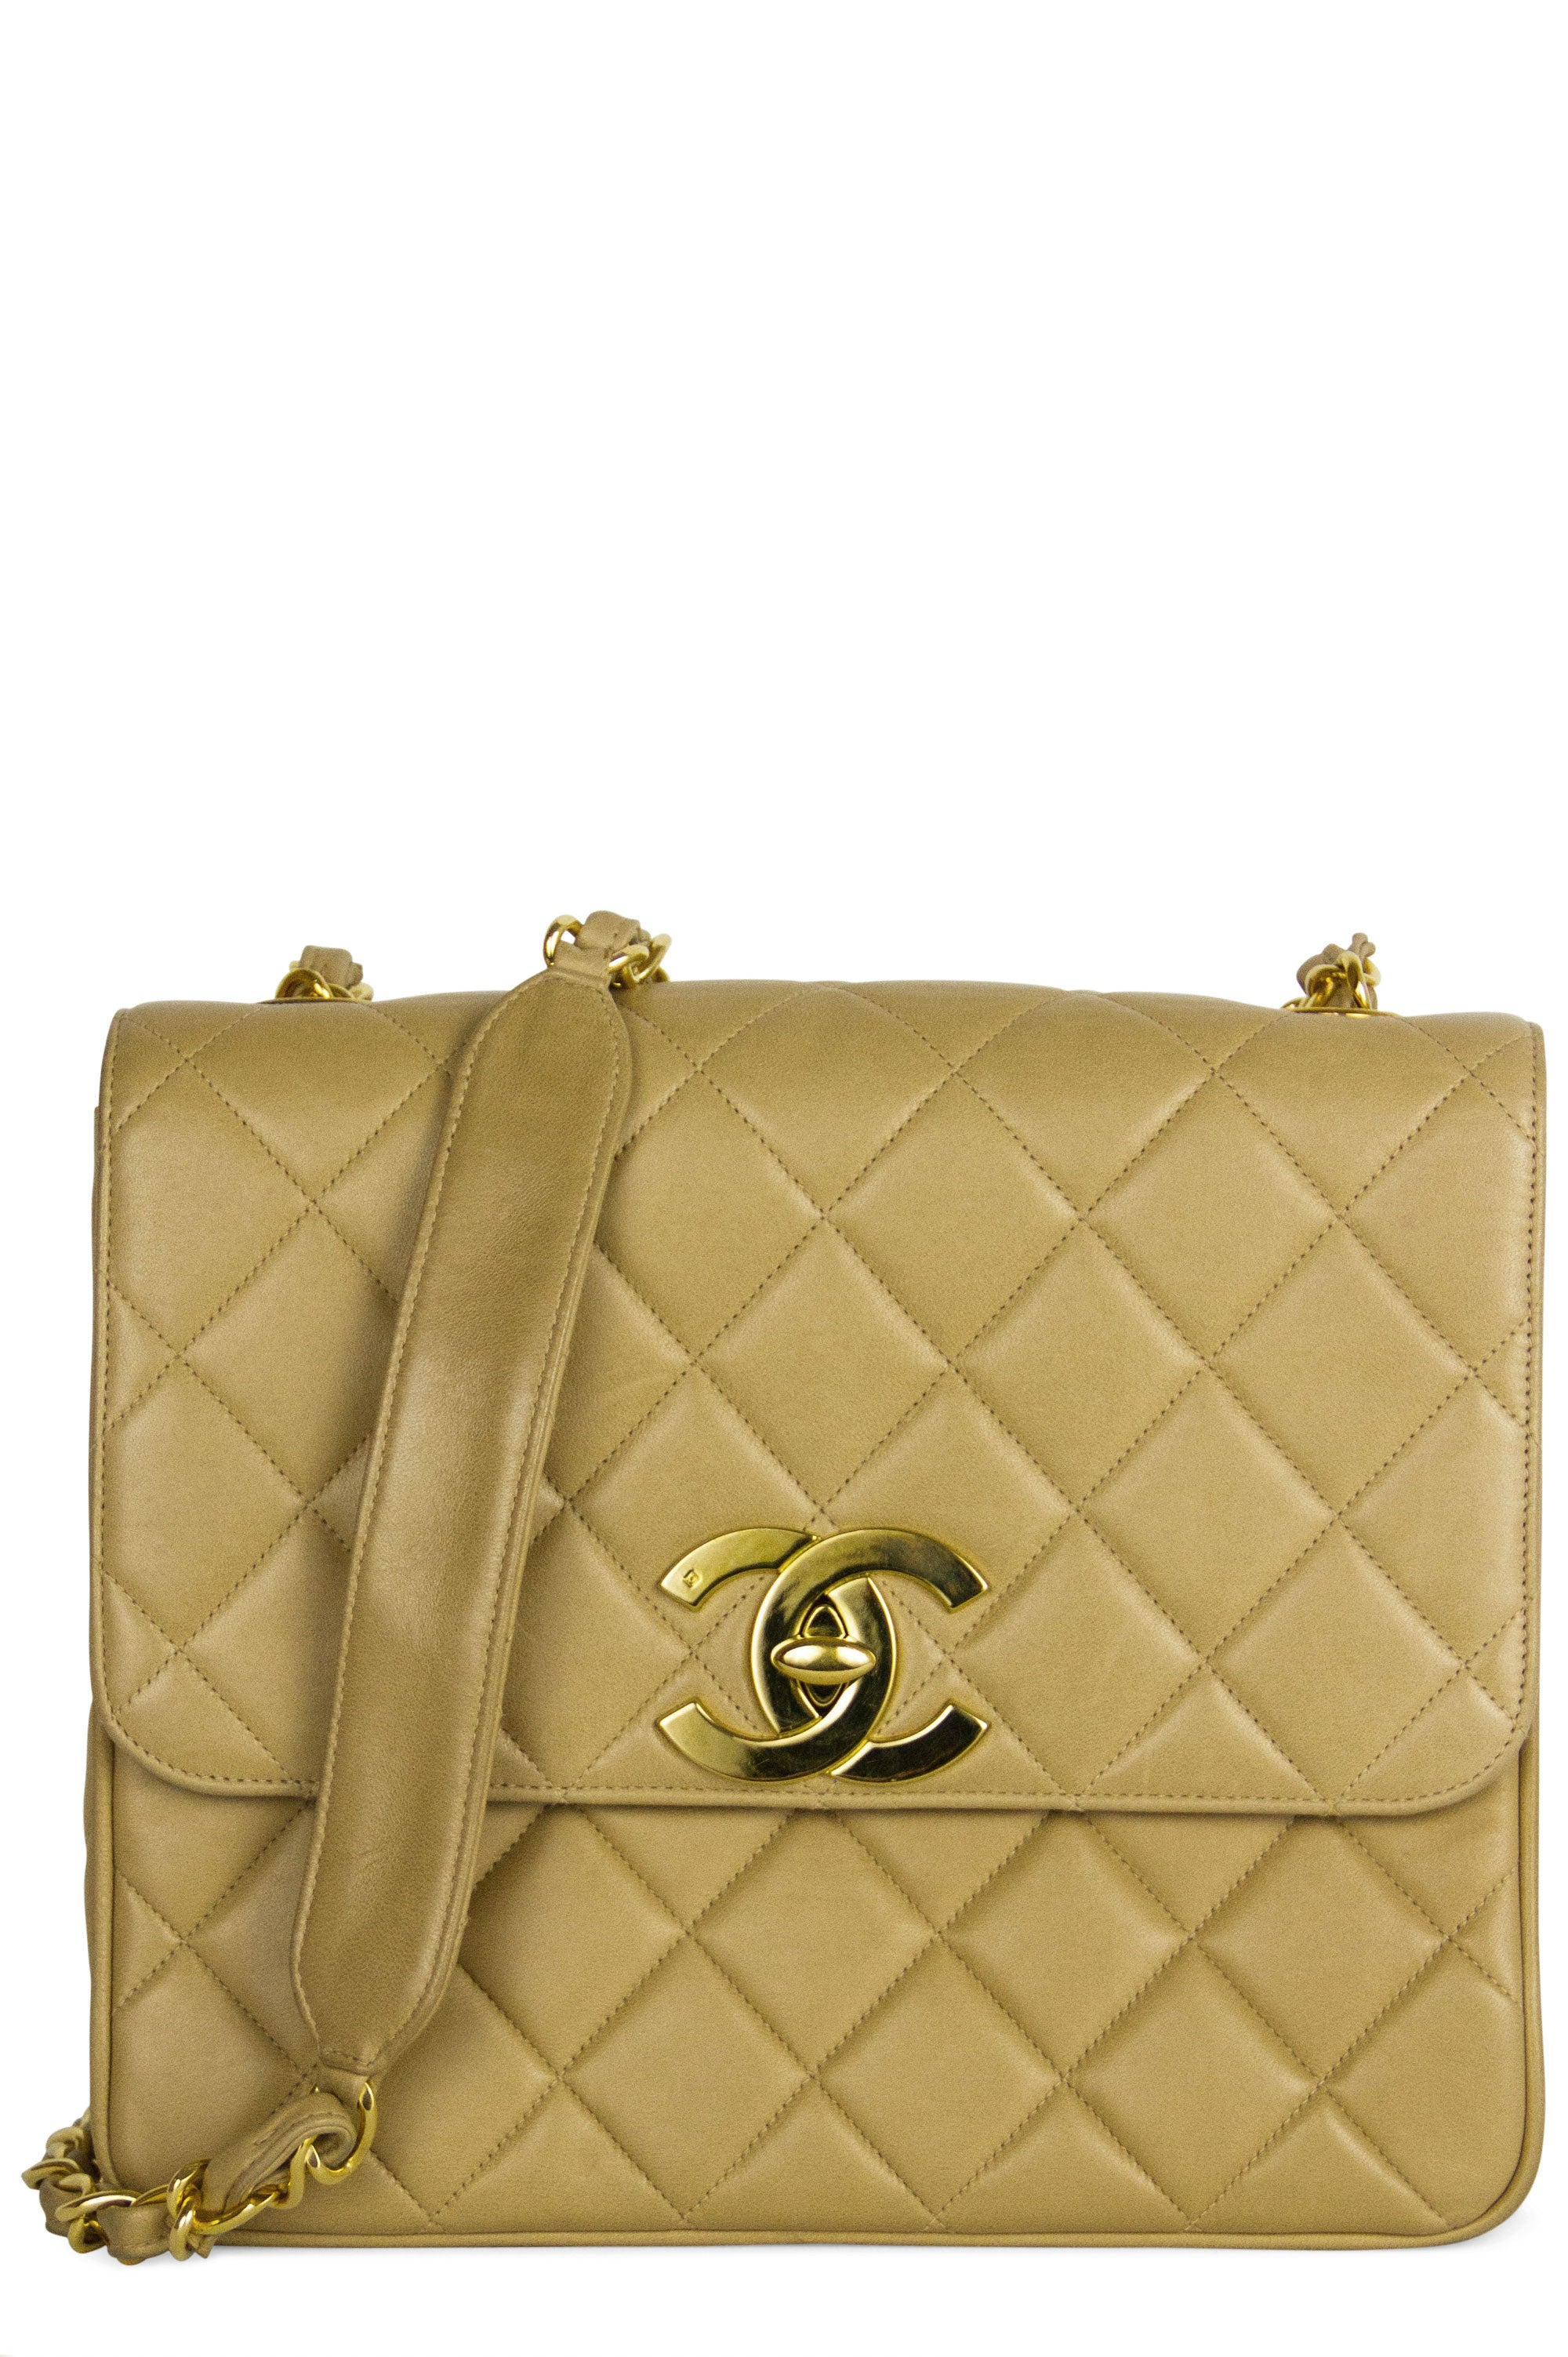 Chanel Flap Bag Vintage CC Crossbody Beige Frontalansicht Gold Hardware